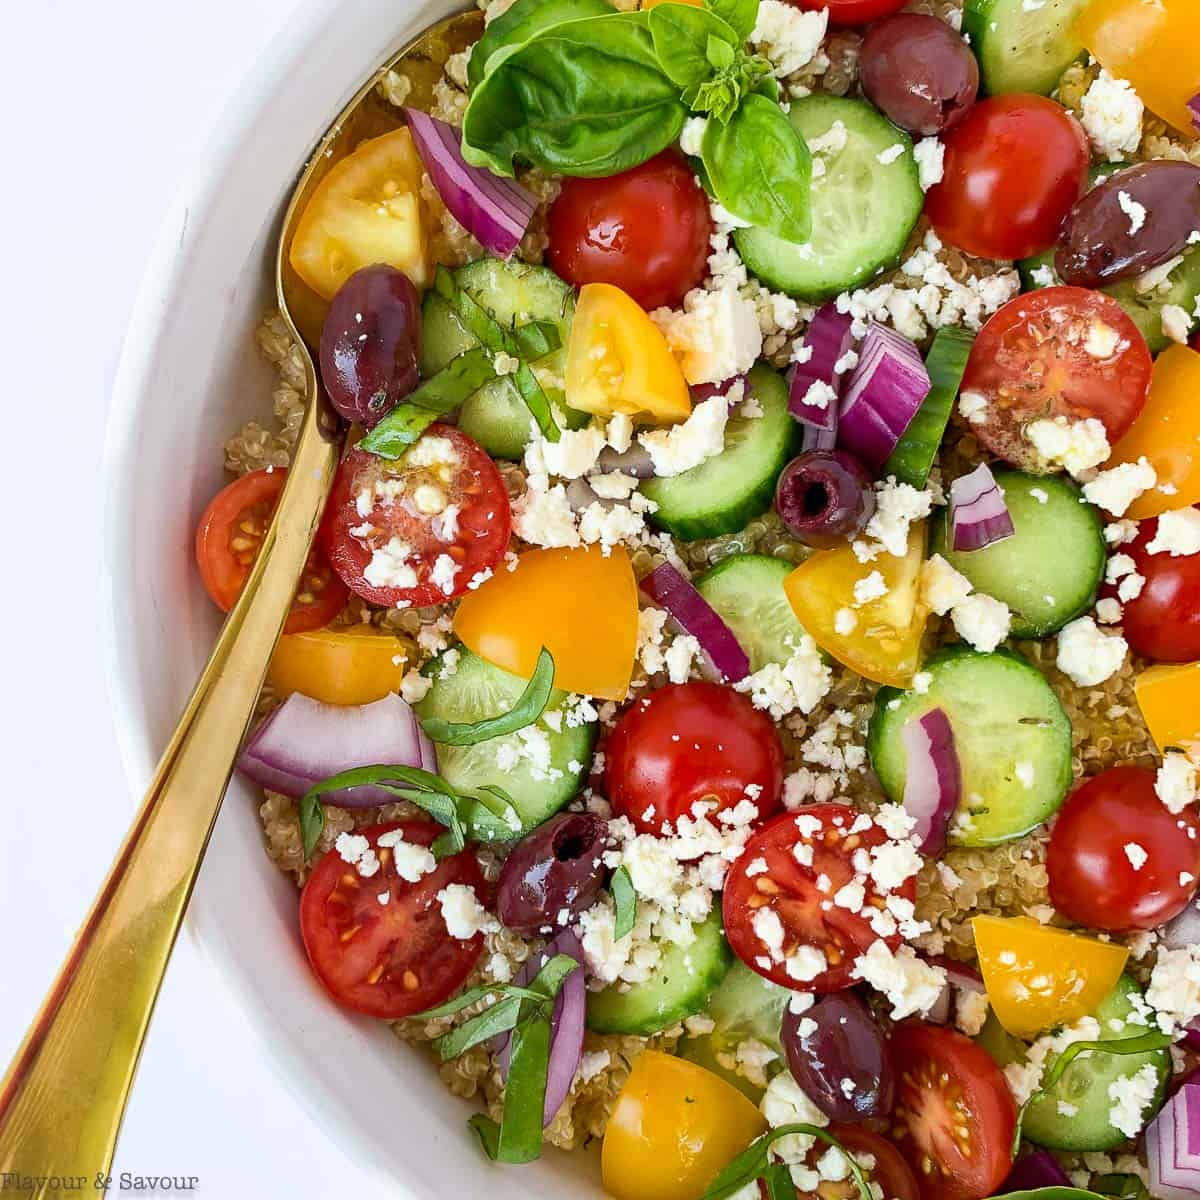 Close up view of Mediterranean Quinoa Salad with cucumbers, tomatoes, olives and feta cheese.